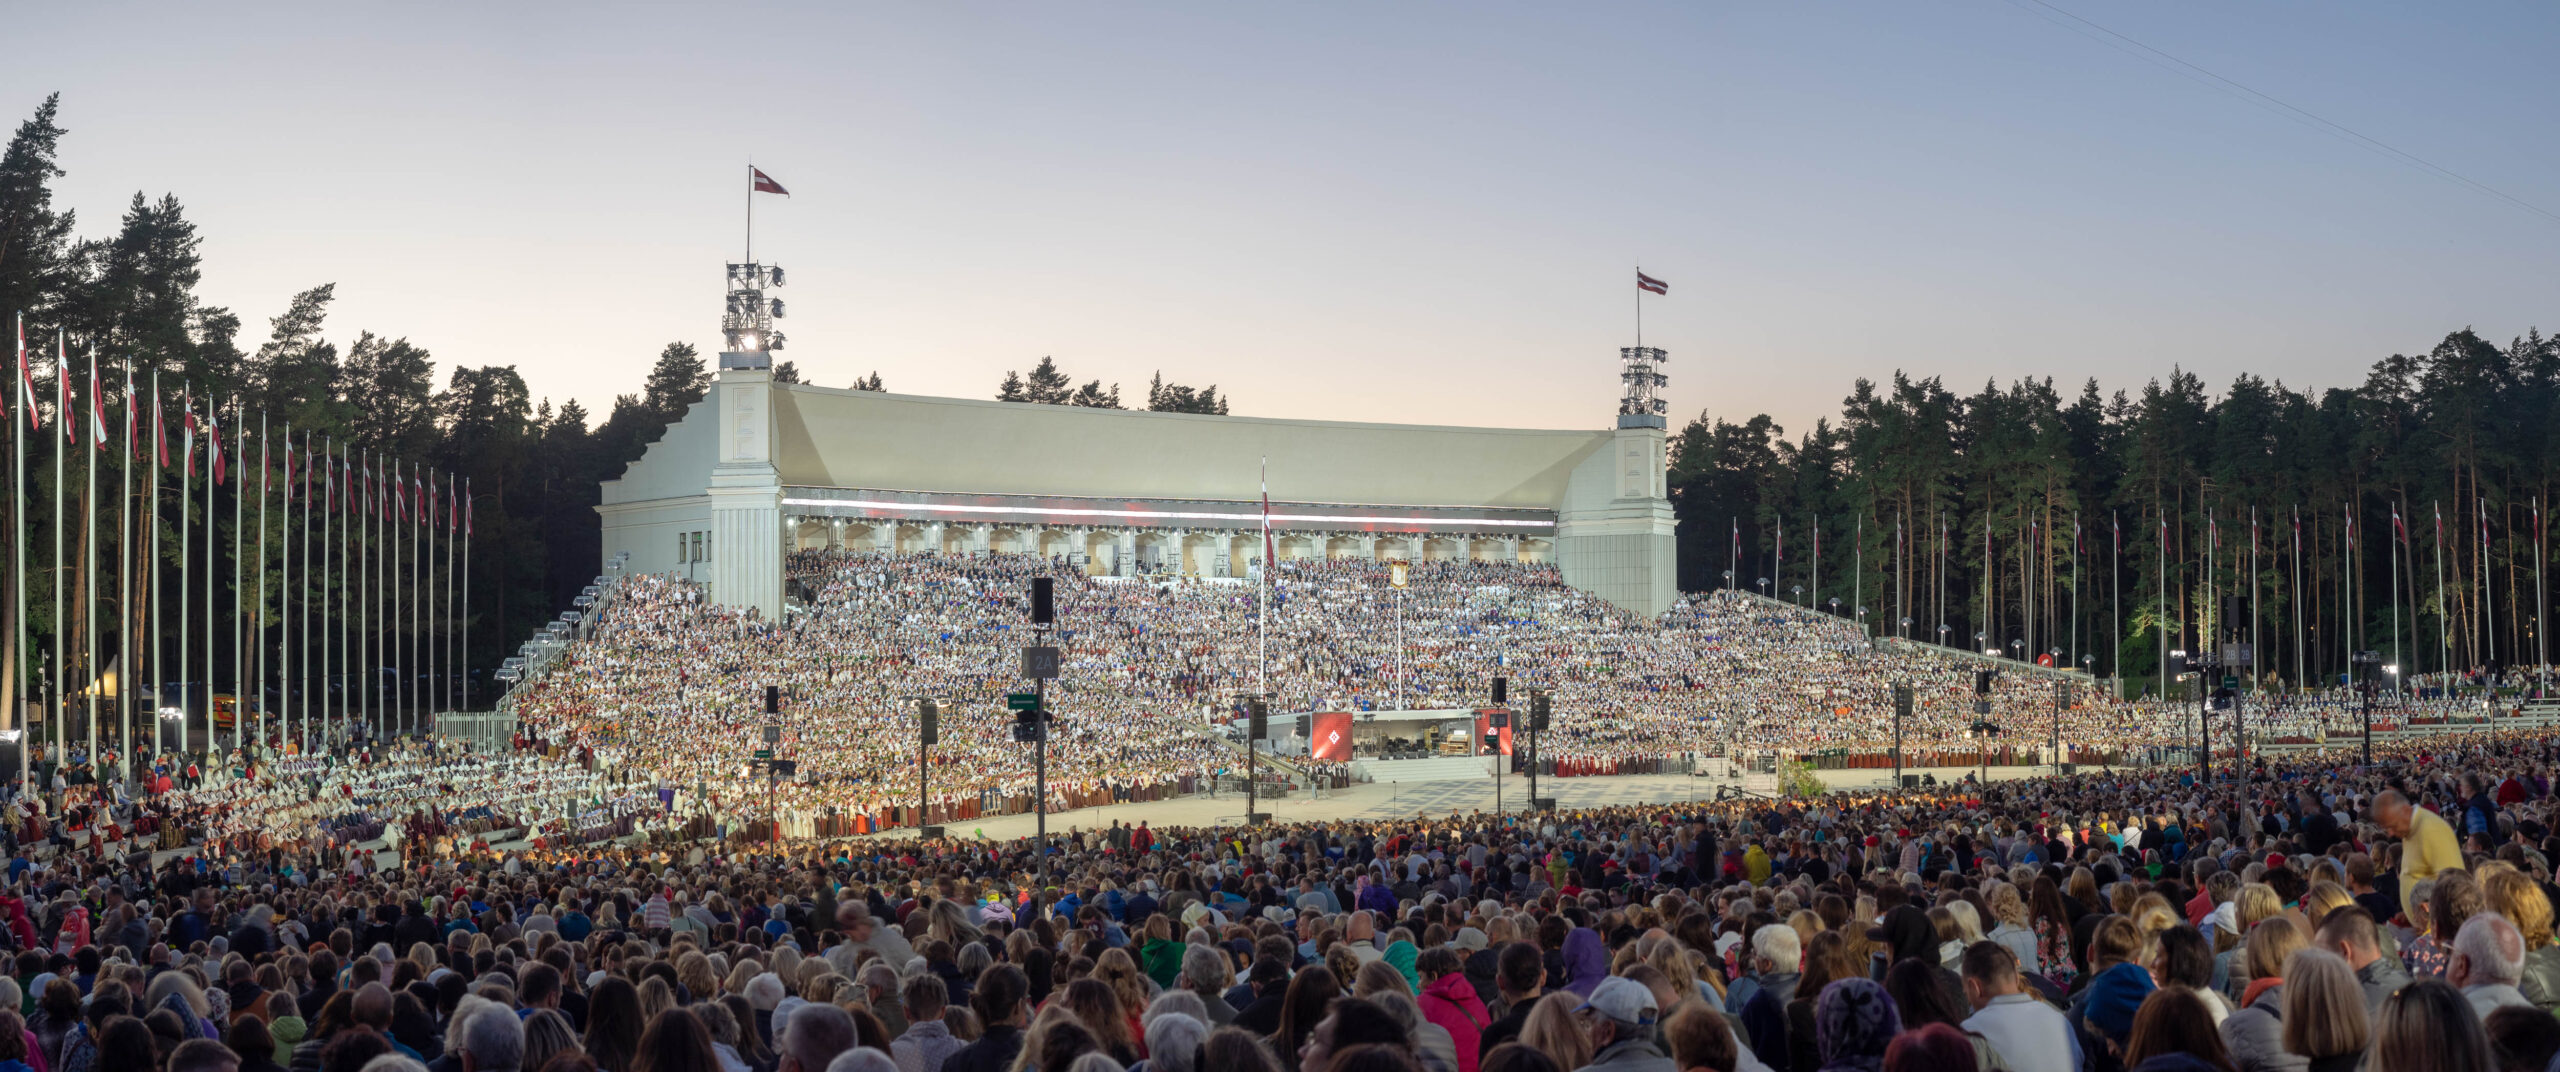 """Valdis Ošiņš, Latvia: Final Concert, 2018, United Choir of 12,000 singers at the Latvian Song and Dance Festival, Latvia - """"Dziesmu svētki"""" is a jewel of Latvian culture since 1873. Tens of thousands of people sing and dance once every five years, watched by national and global audiences. It has been added to the UNESCO List of the Intangible Cultural Heritage of Humanity together with a similar Estonian and Lithuanian festival, as Baltic song and dance celebrations."""